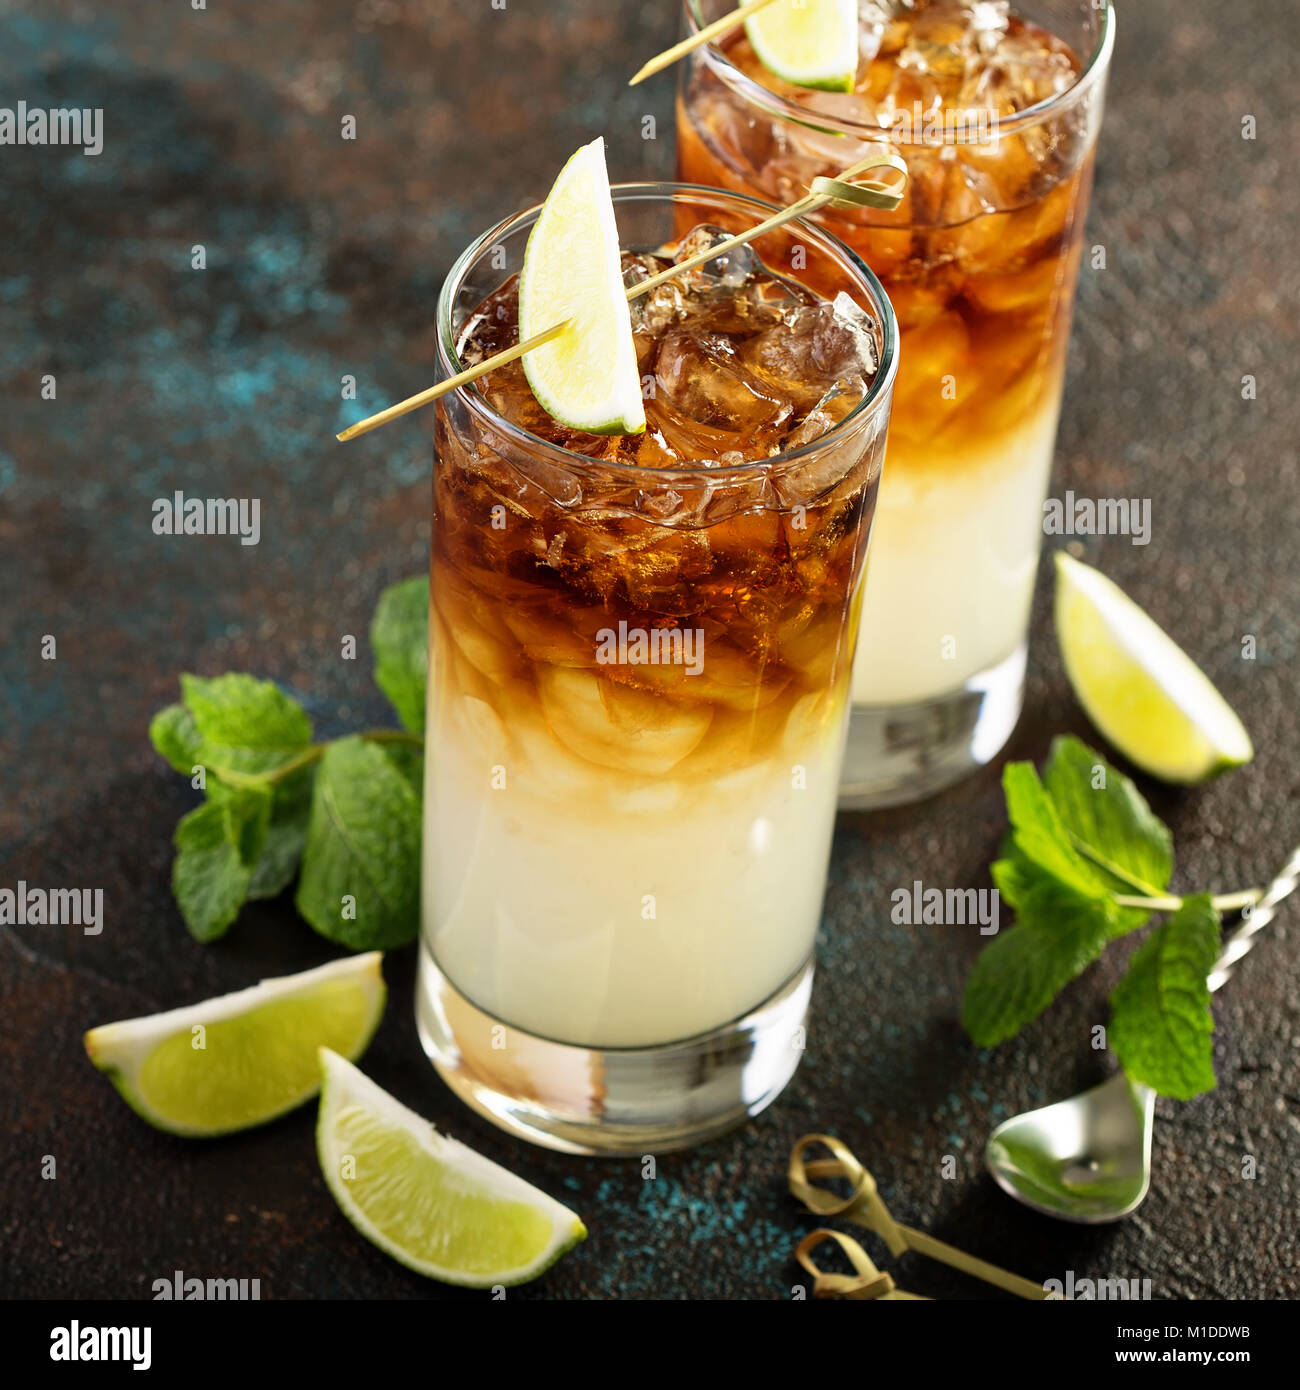 Dark and stormy cocktail - Stock Image